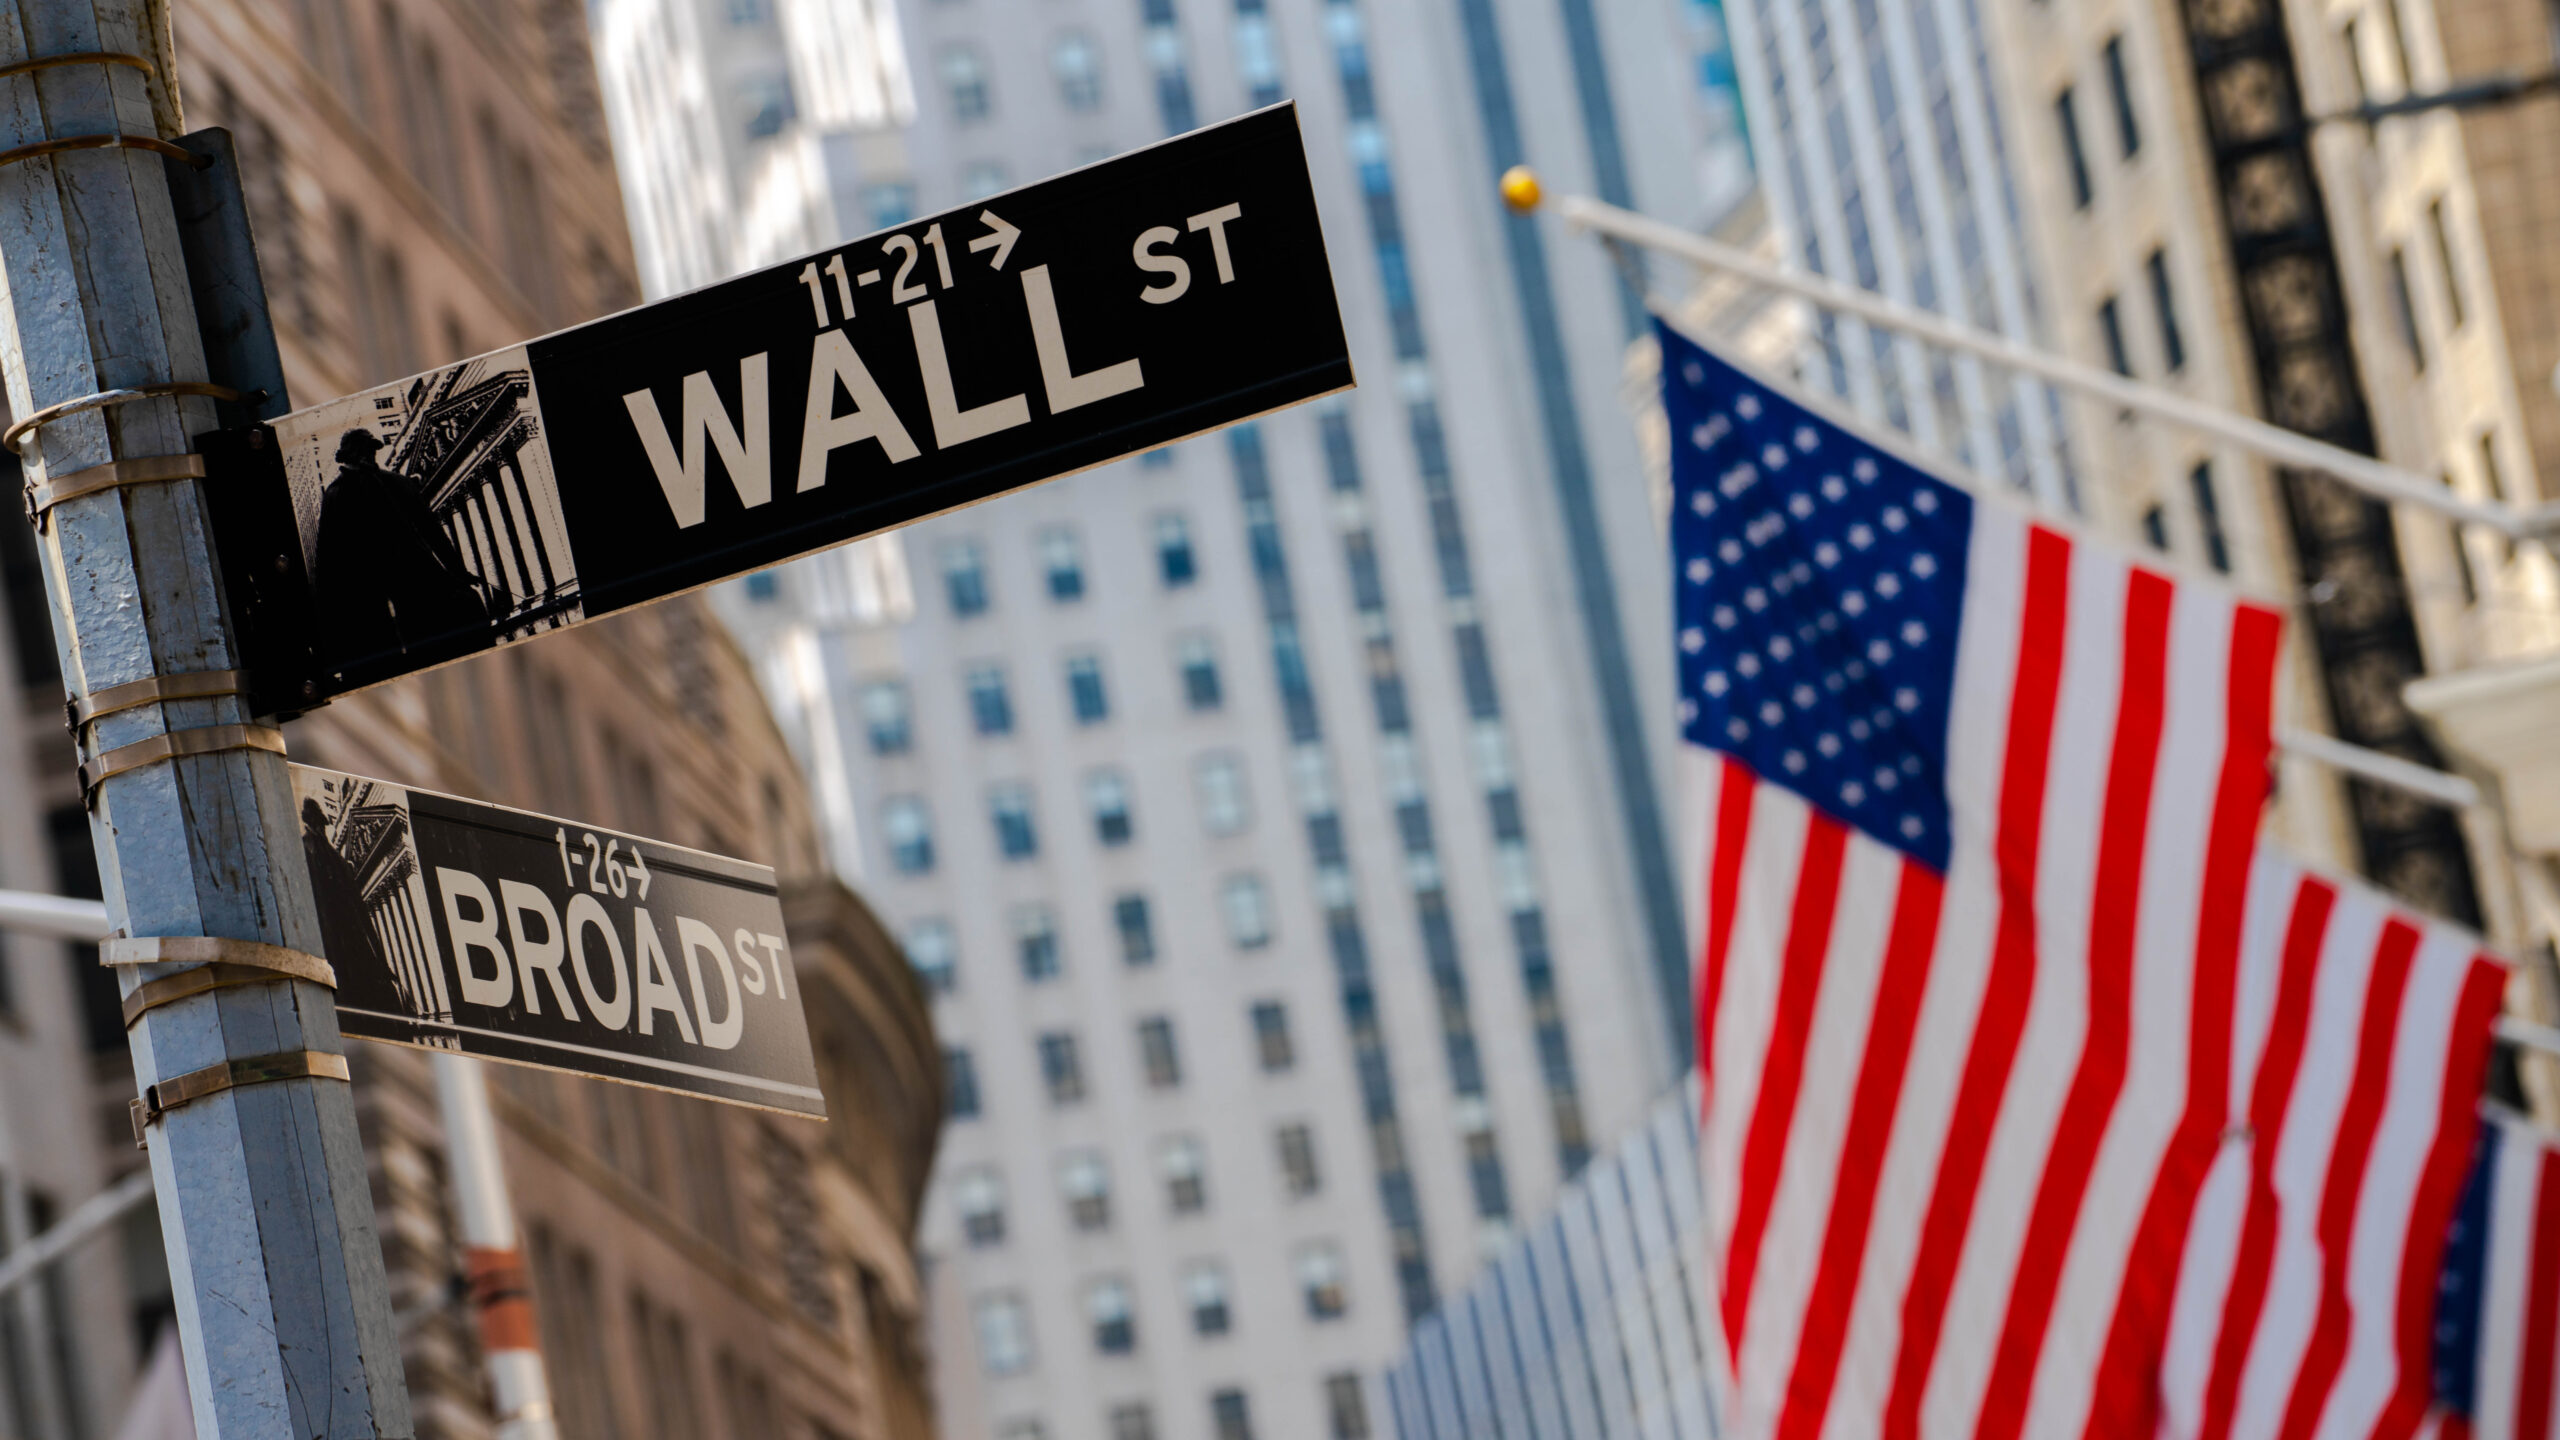 Wall Street Forbes